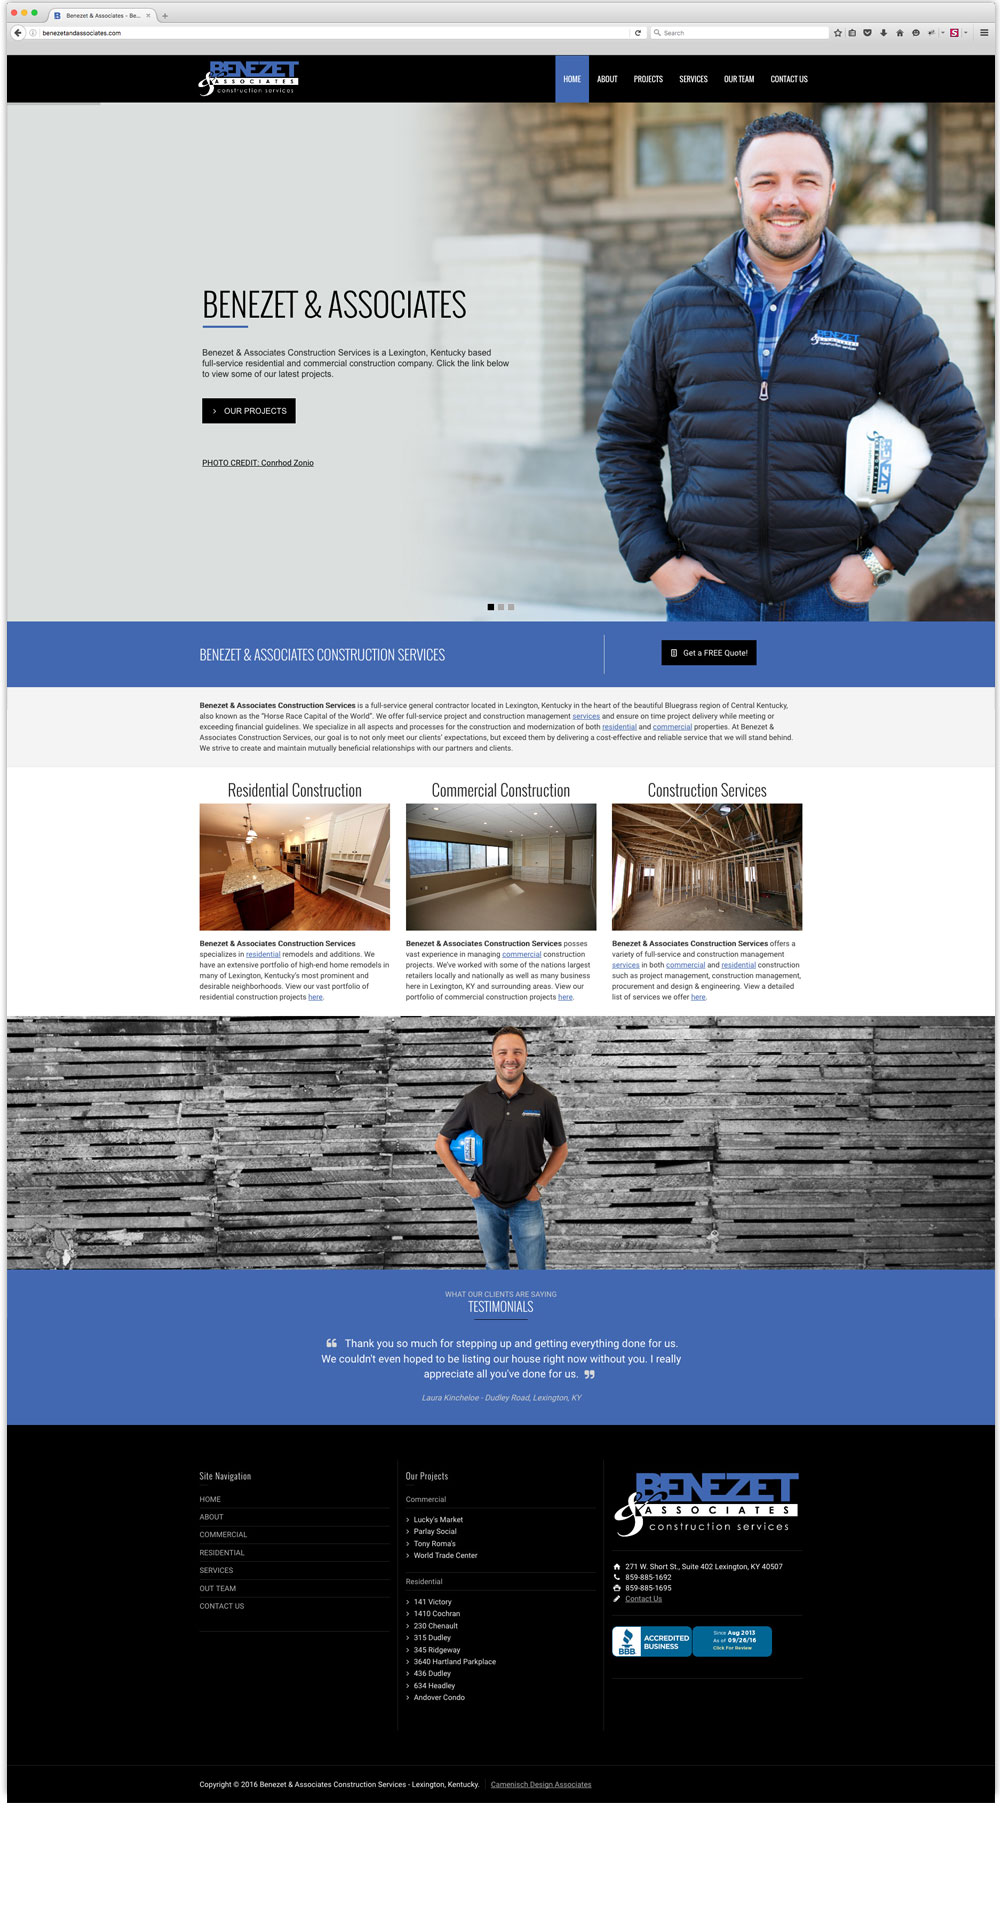 Benezet & Associates website design